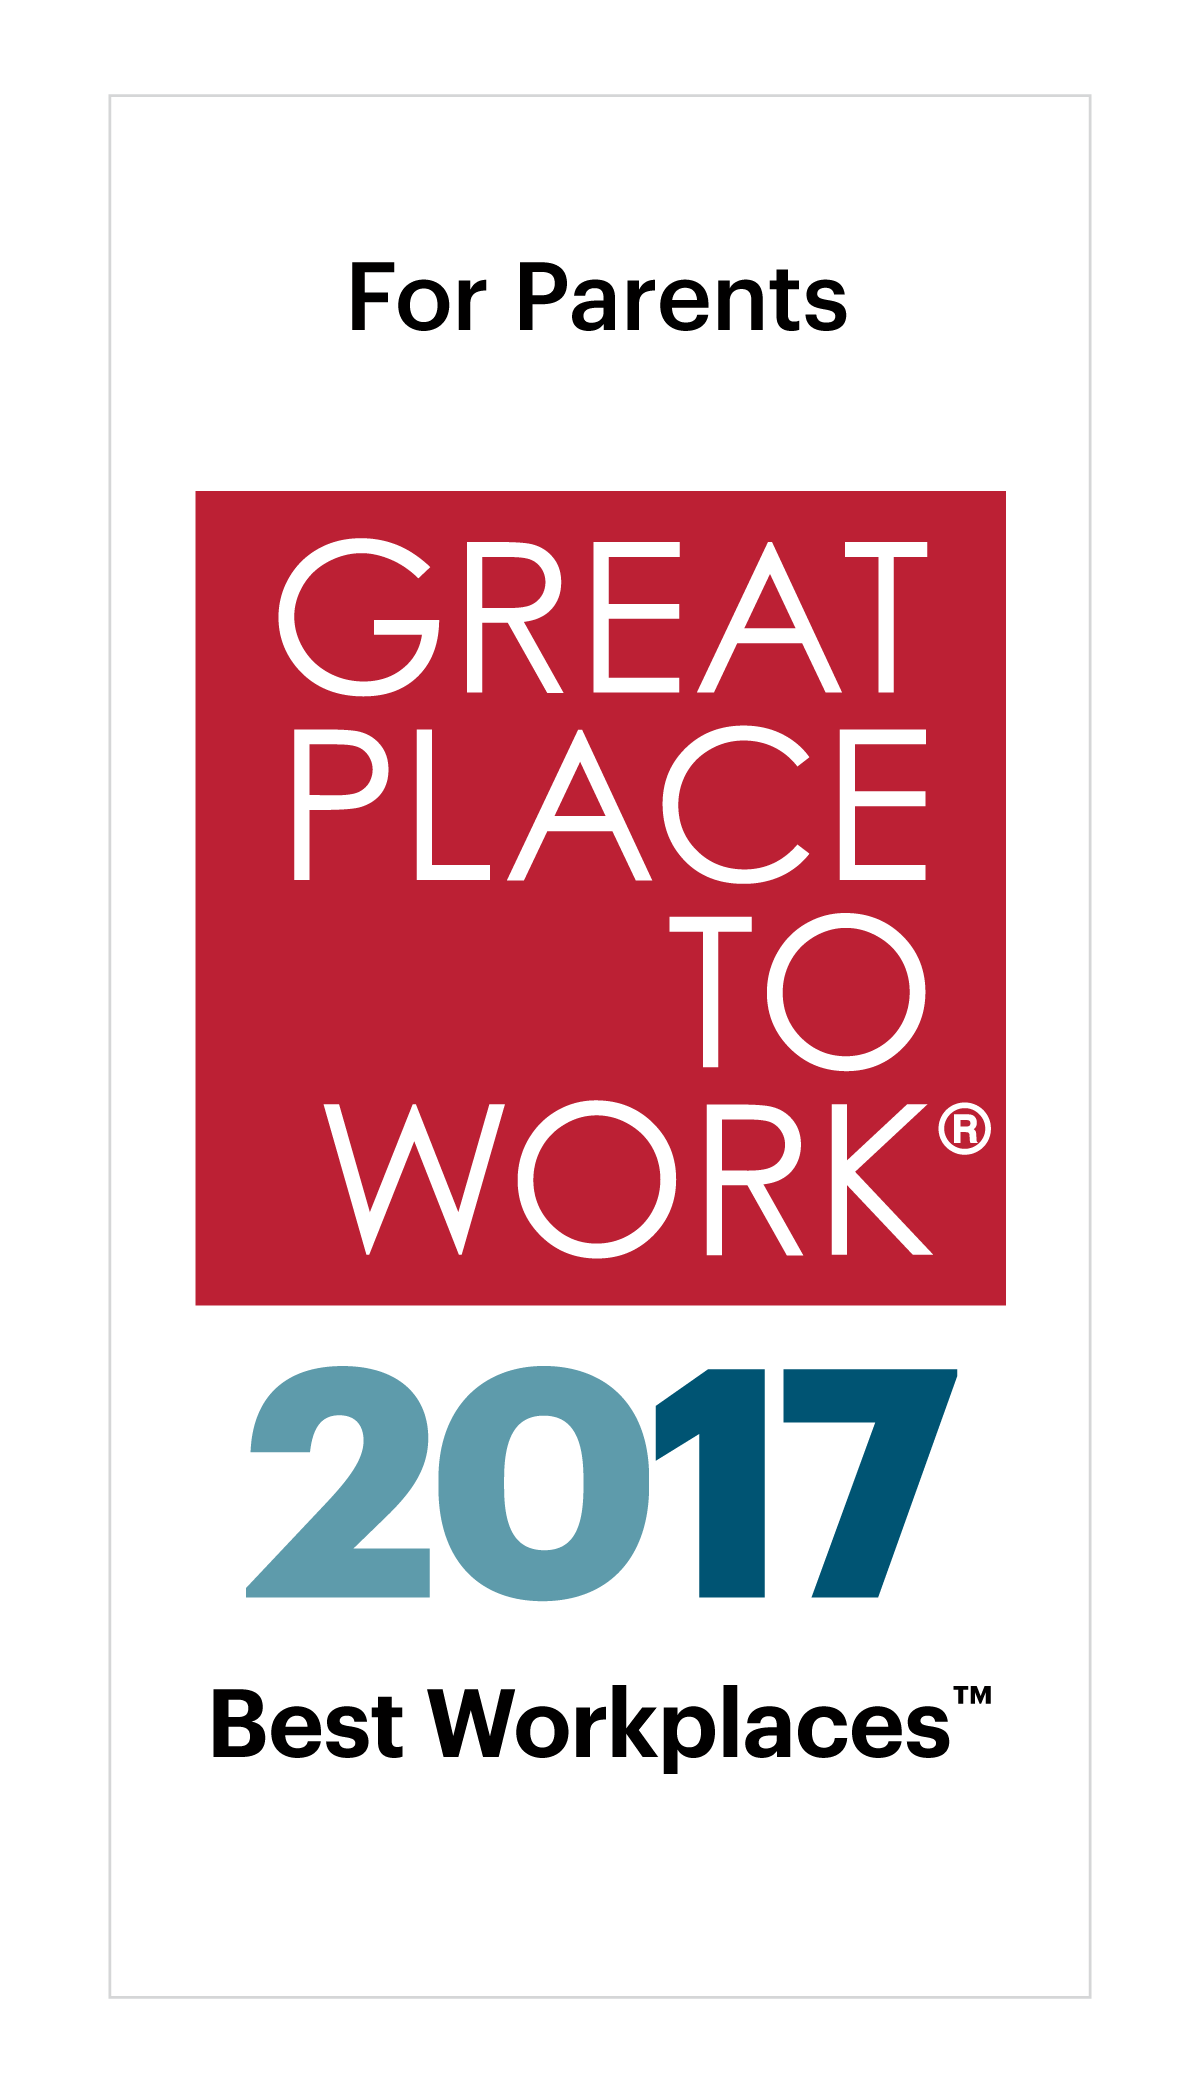 Best Workplaces for Working Parents 2017